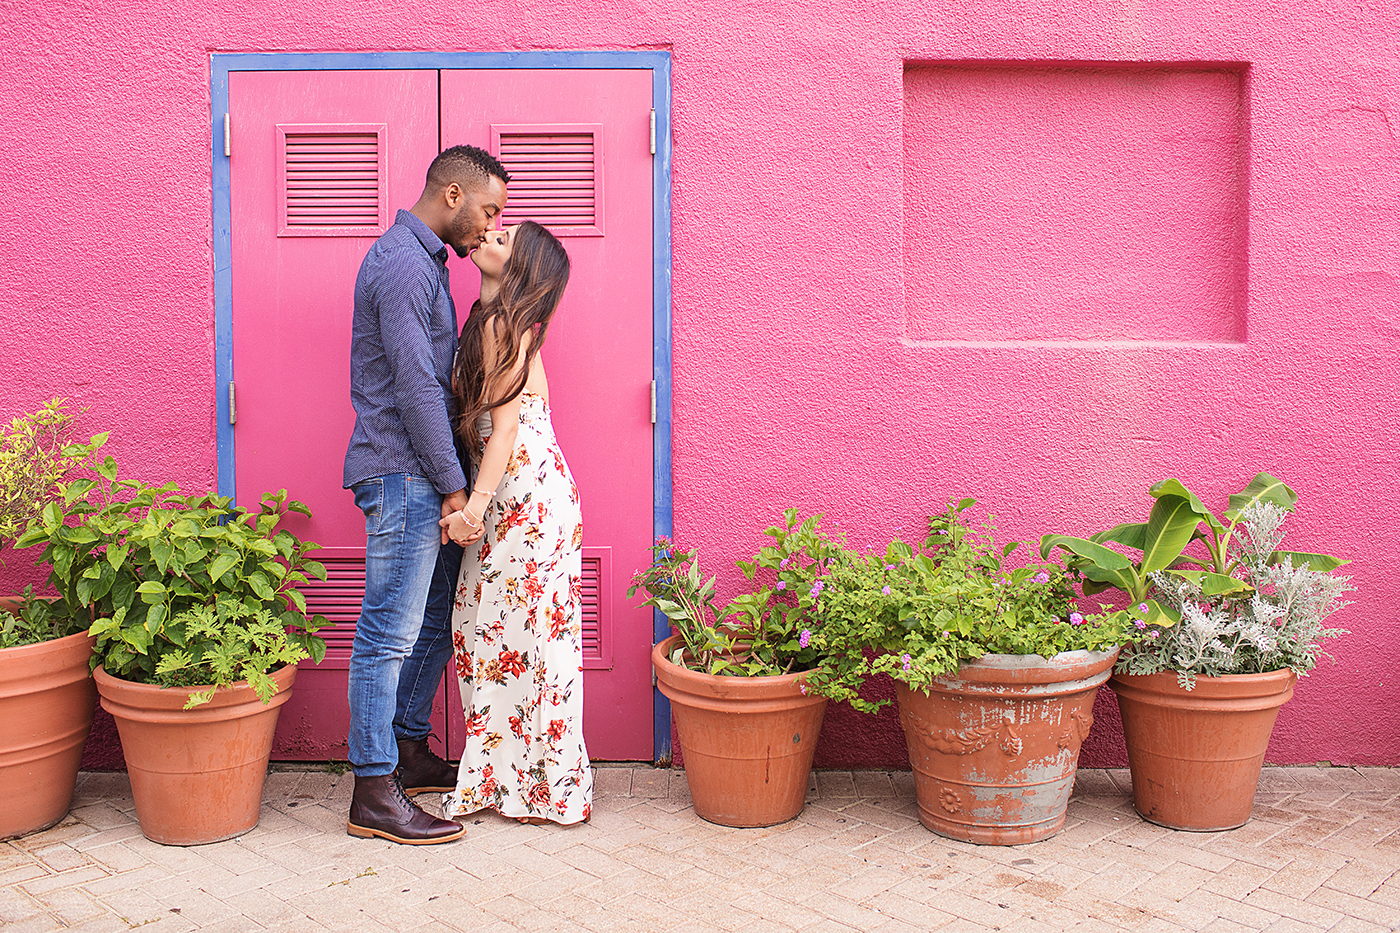 san antonio market square engagement shoot 3A8844.jpg